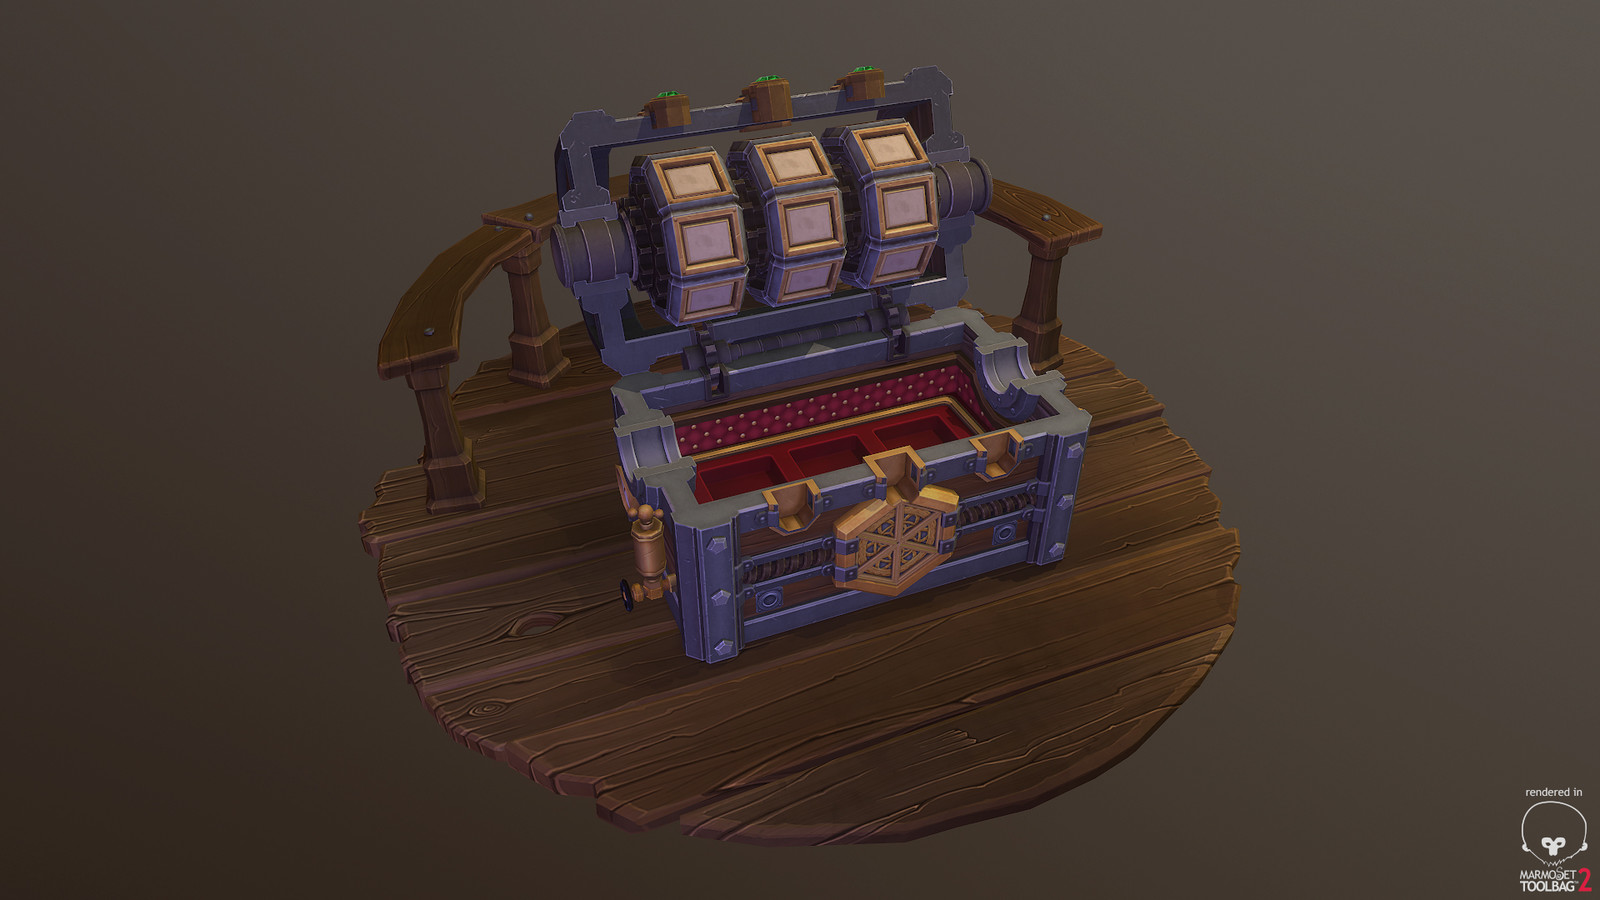 Uber Chest - Stage Two - Tumblers spin, land on symbols and then chest lid opens.